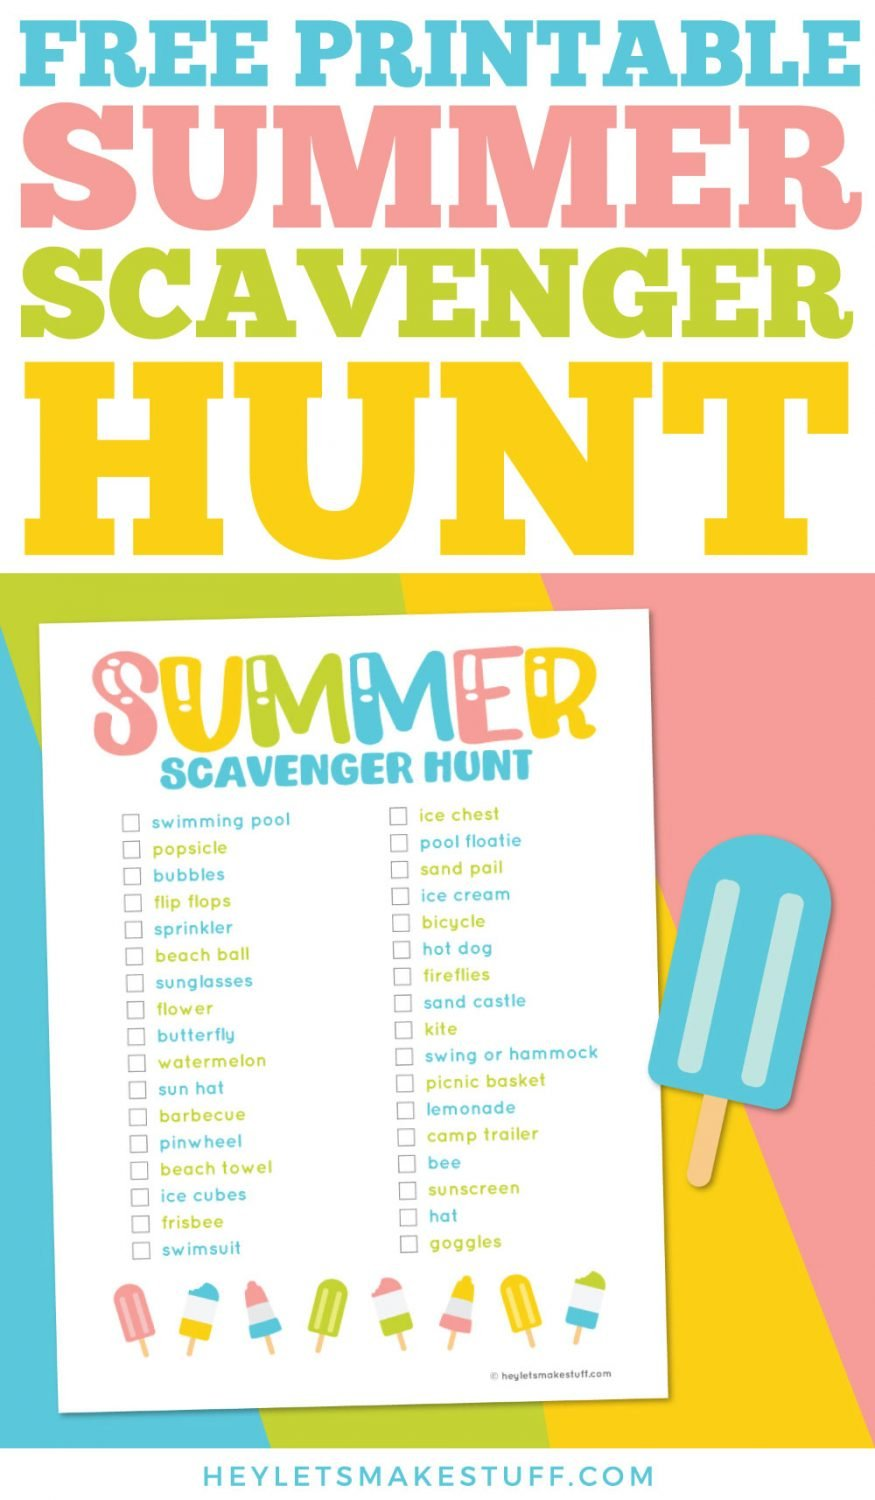 Free printable summer scavenger hunt pin image